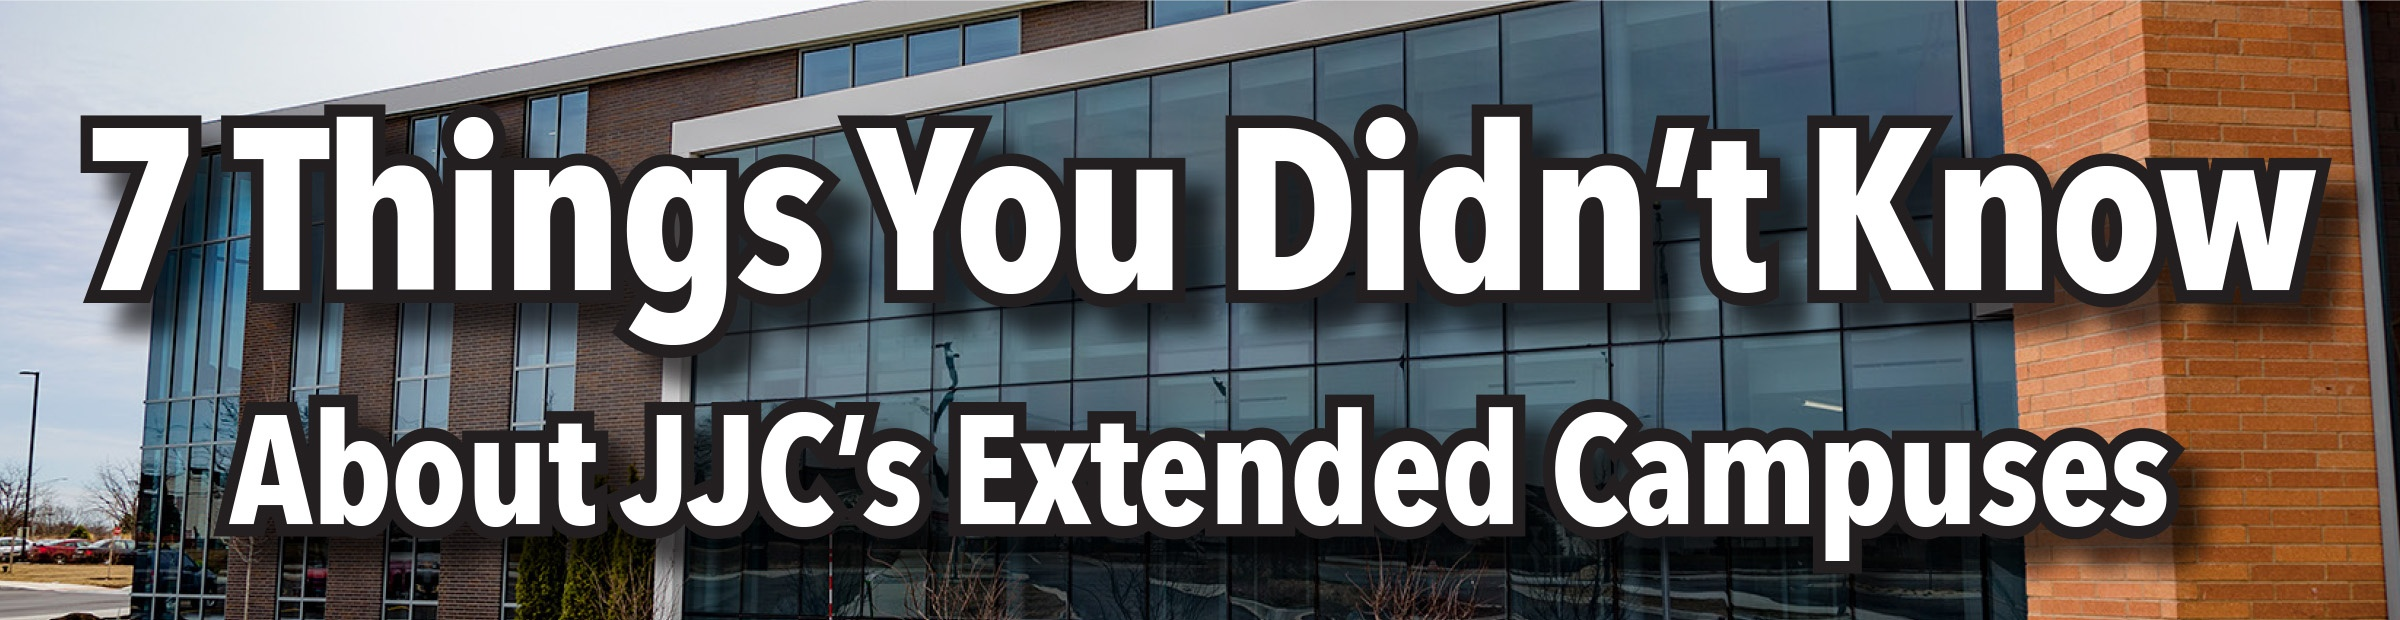 7 Things You Didn't Know About JJC Extended Campuses Morris Romeoville Joliet